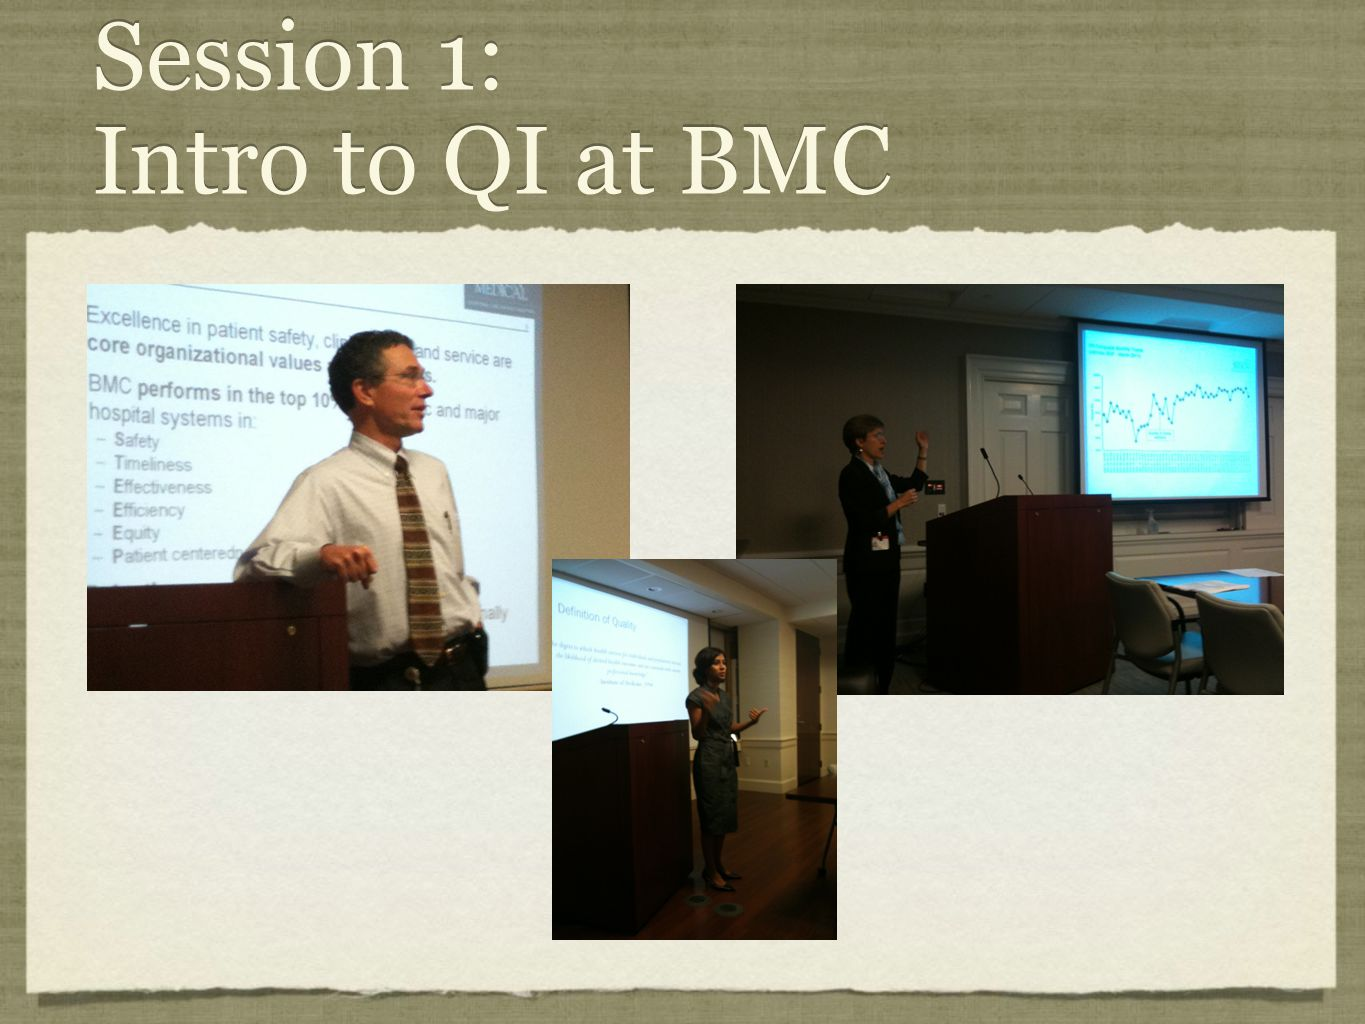 Session 1: Intro to QI at BMC